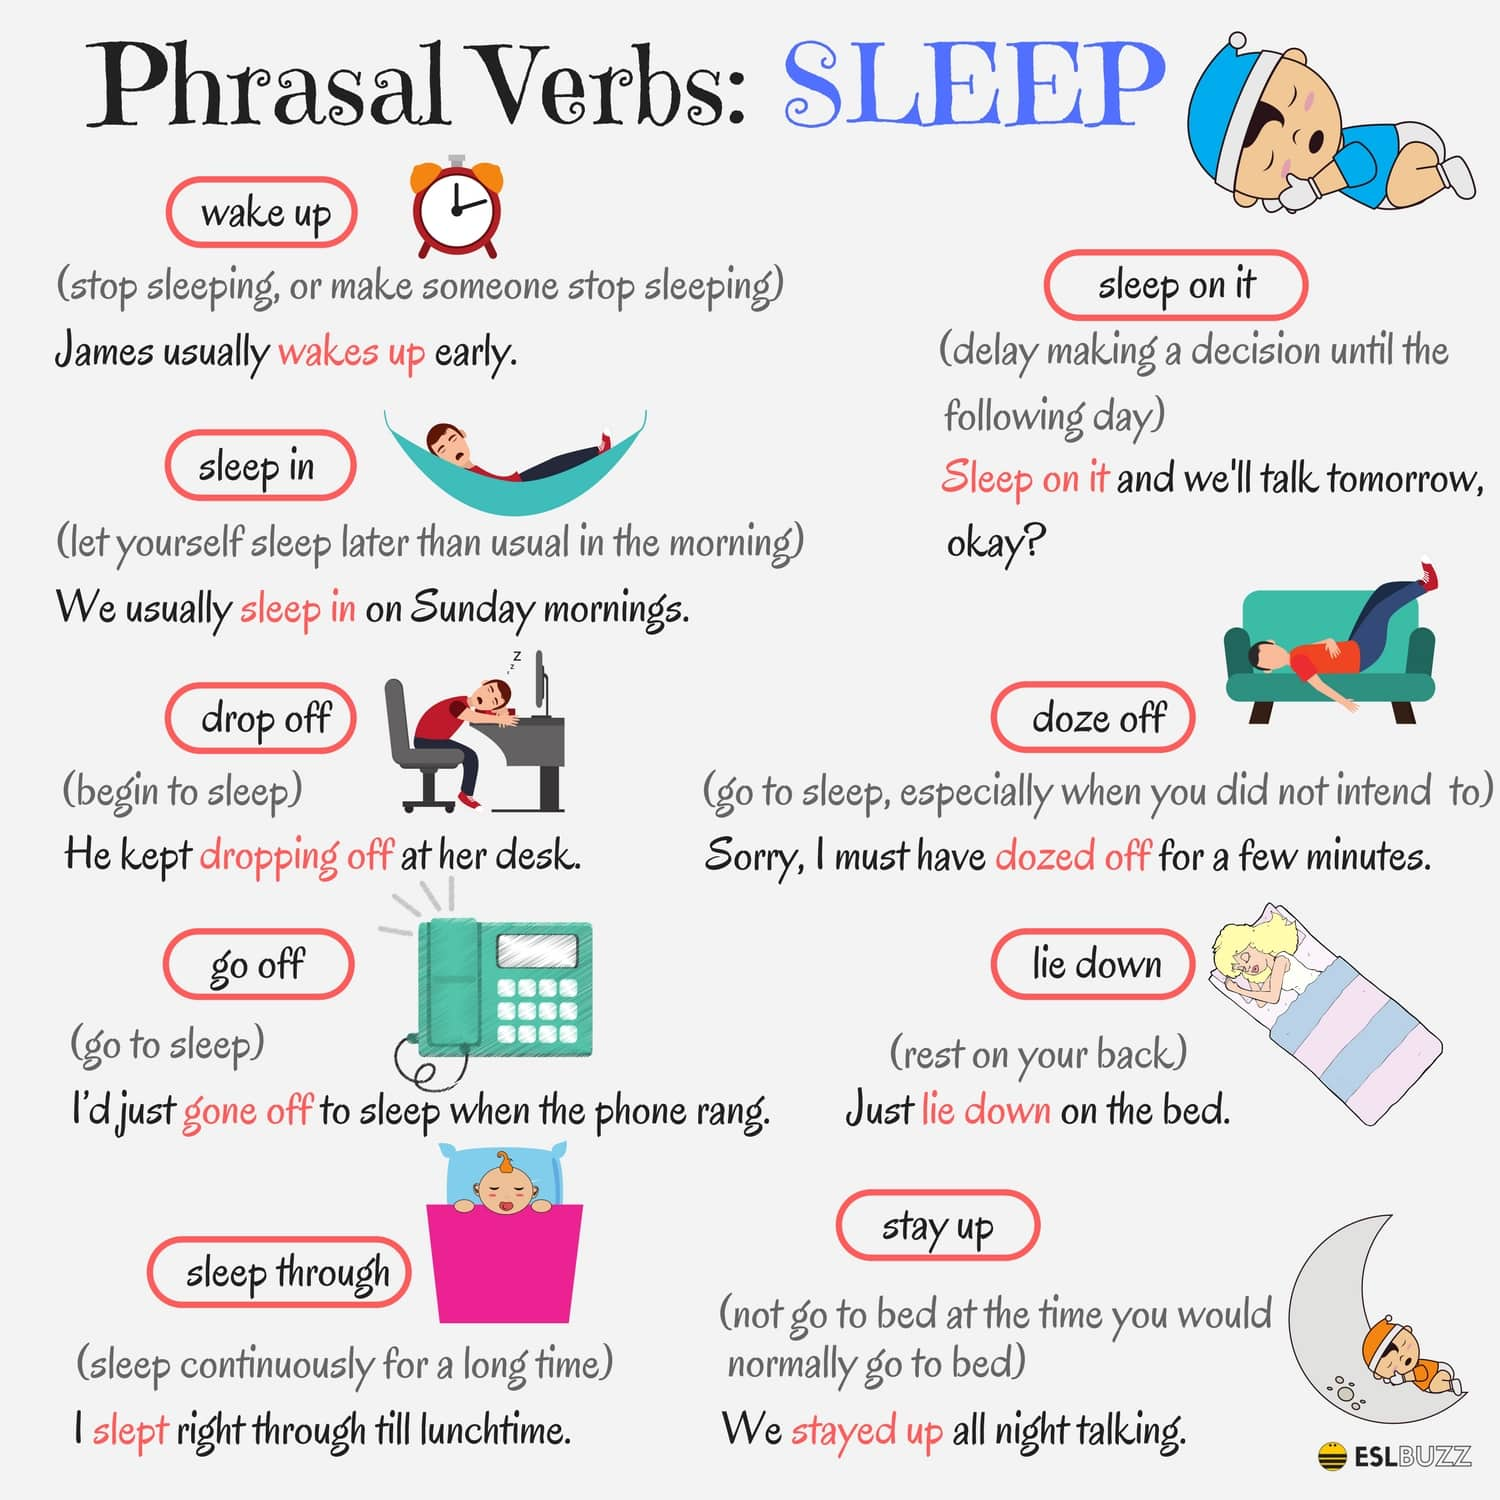 Phrasal Verbs Related to SLEEP